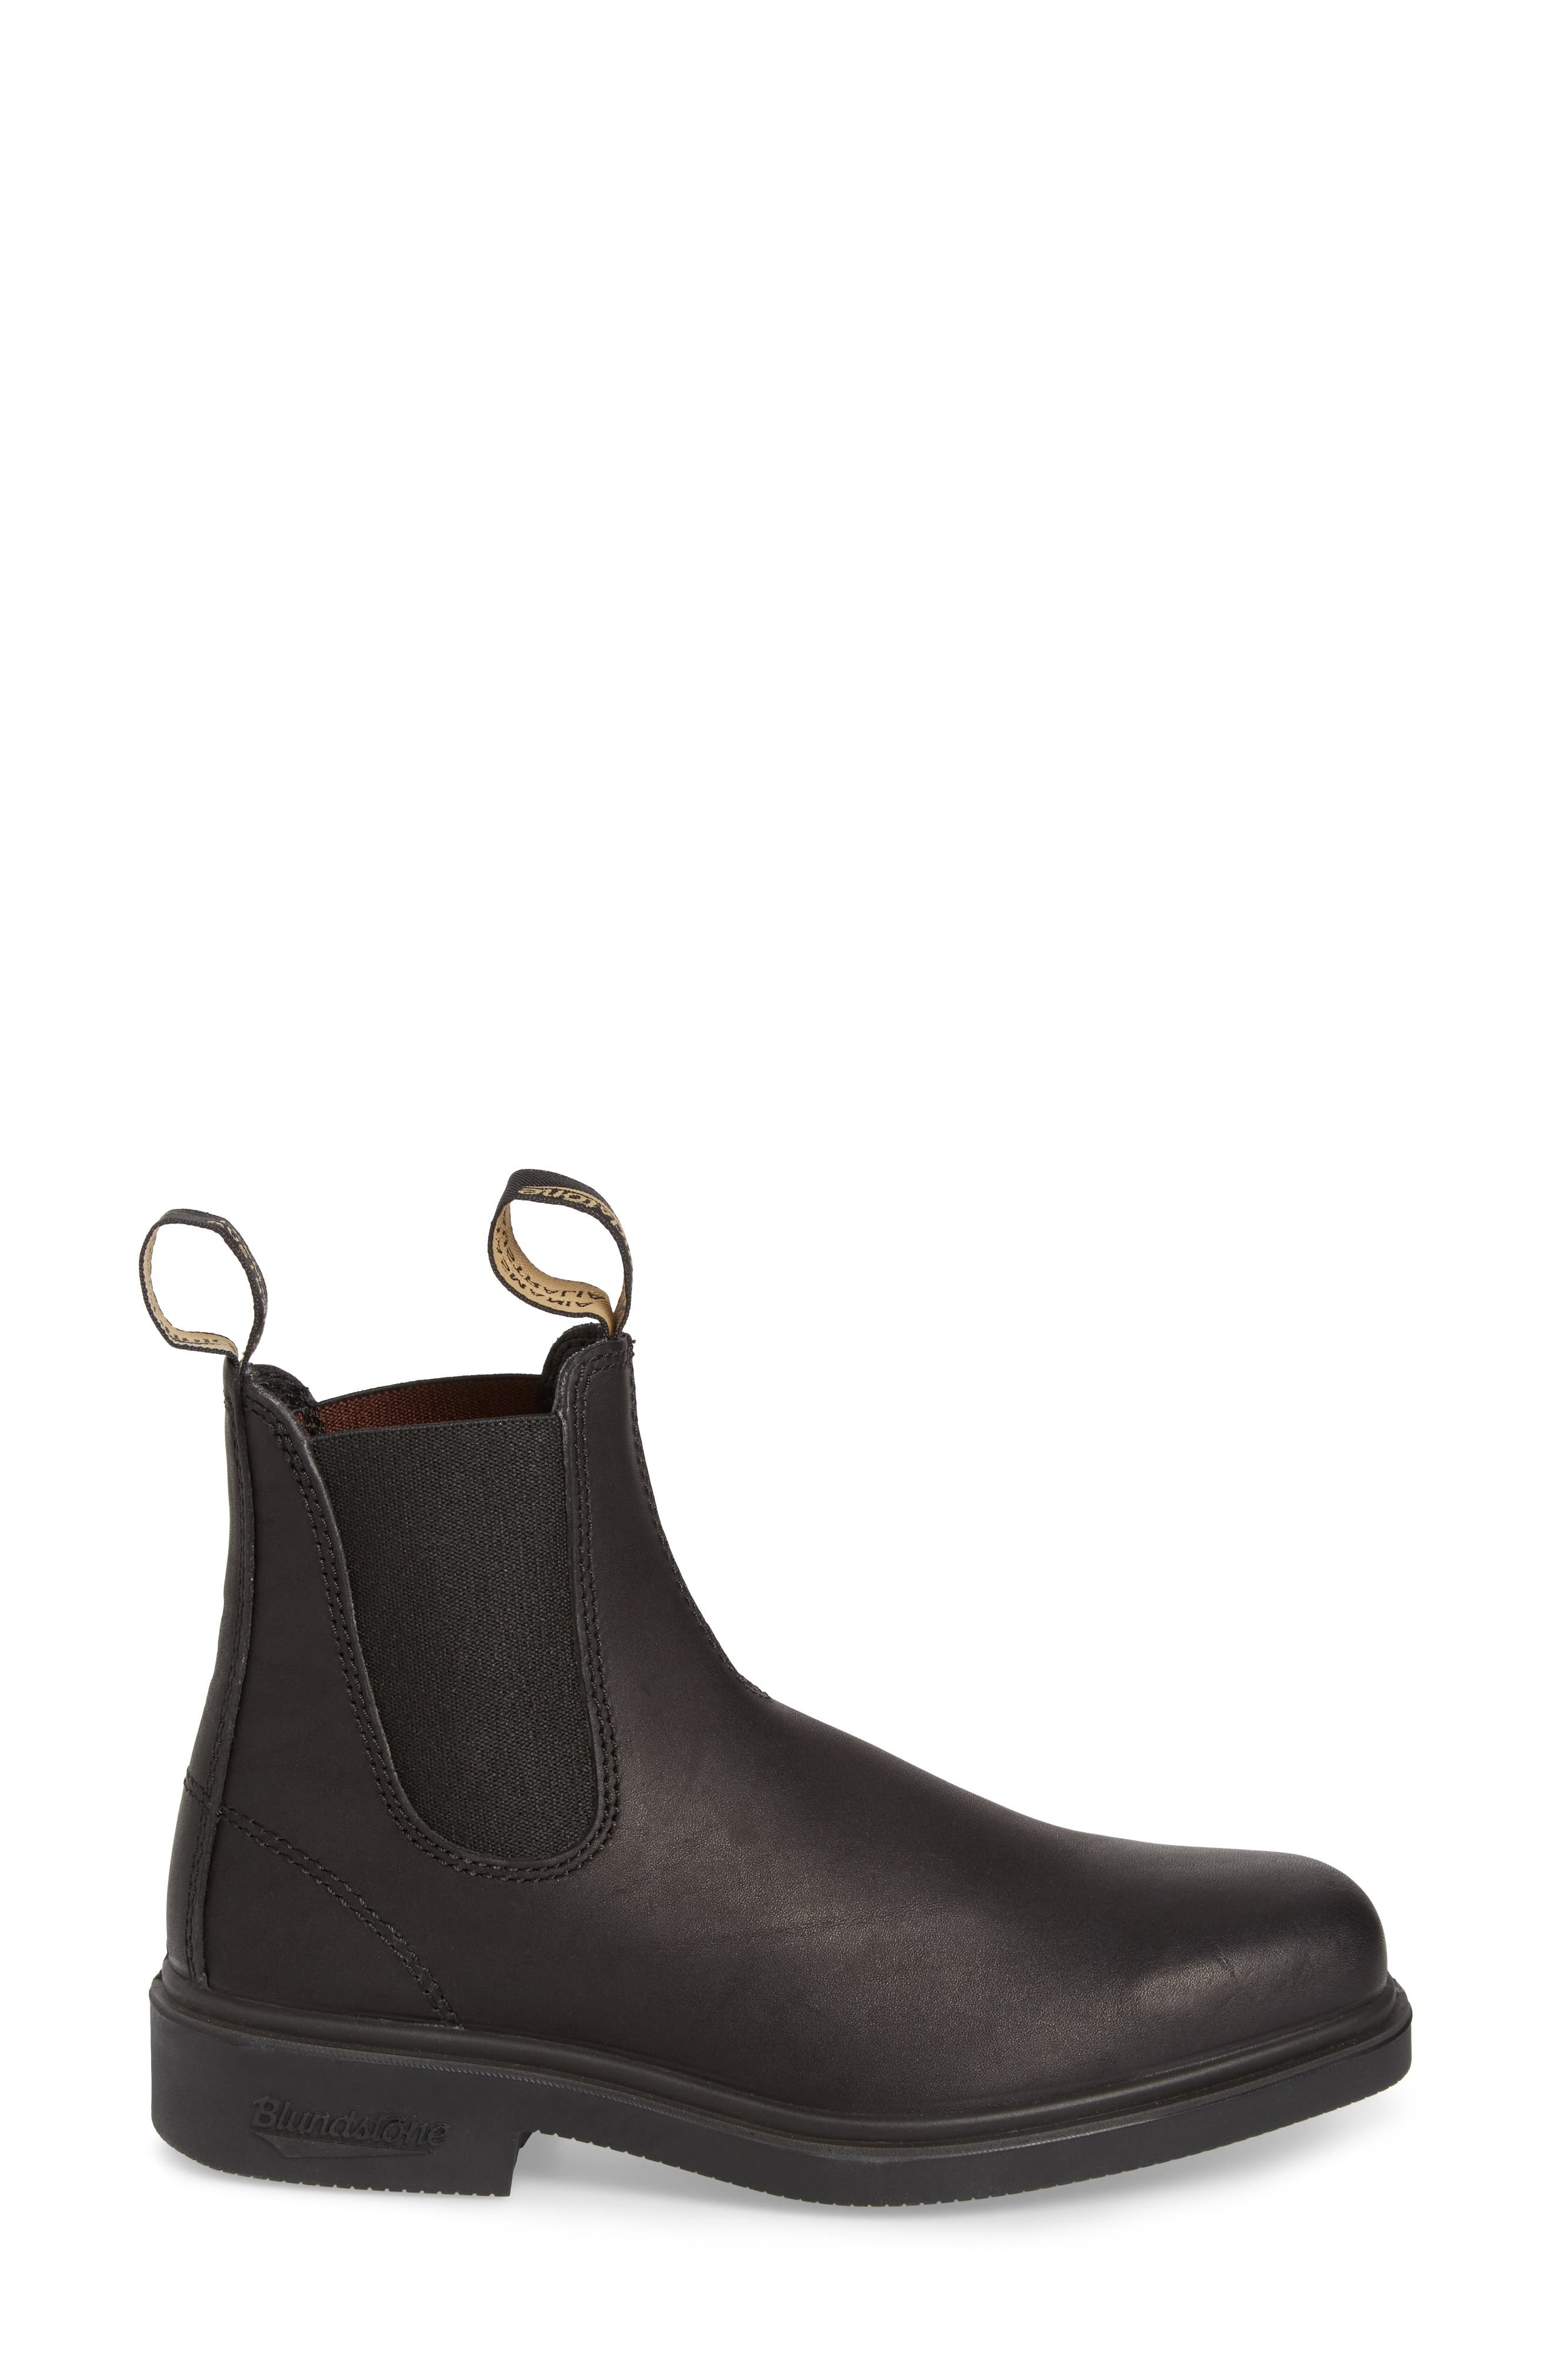 BLUNDSTONE FOOTWEAR,                             Chelsea Boot,                             Alternate thumbnail 3, color,                             BLACK LEATHER